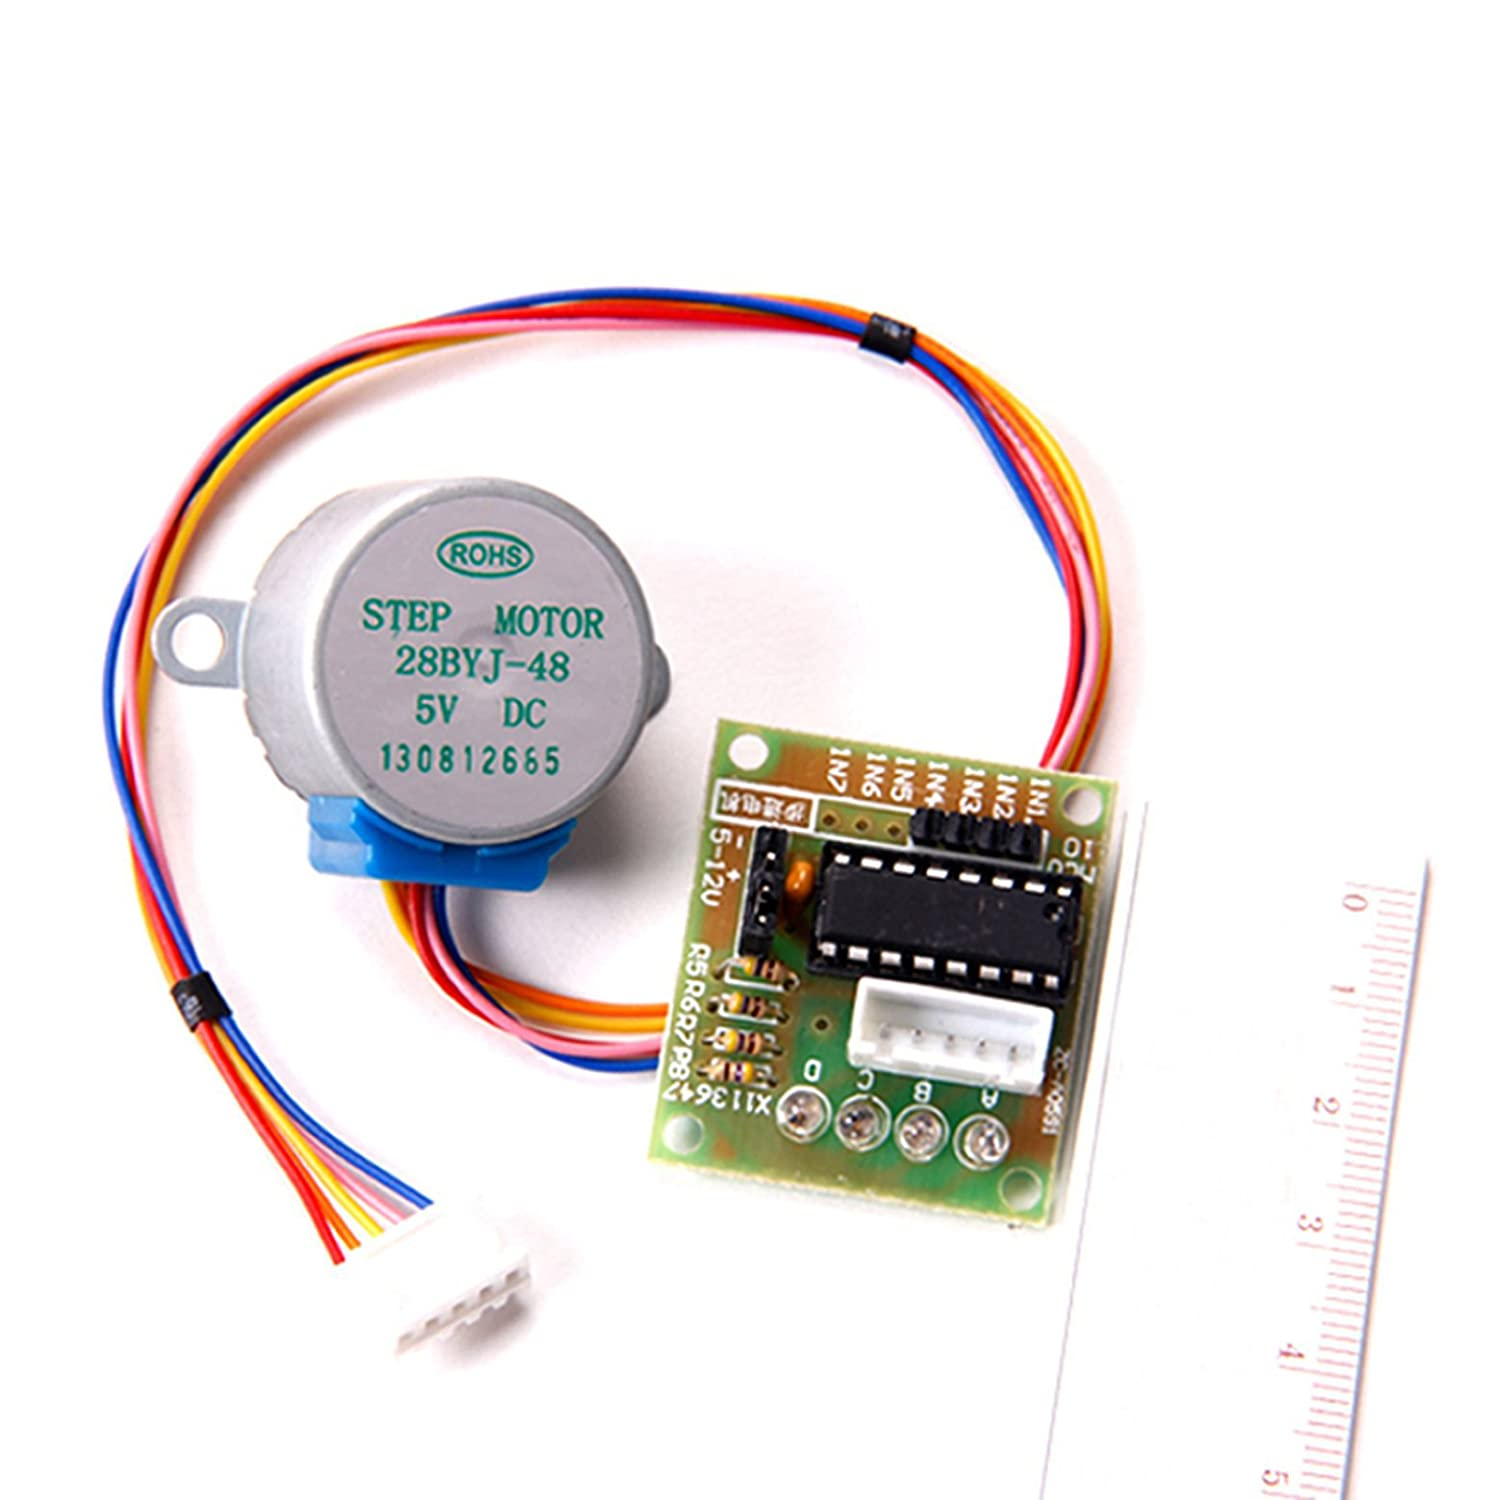 DC 5V 4-Phase 5-Wire Micro Electric Step Motor 28BYJ-48 With Drive Module Board ULN2003